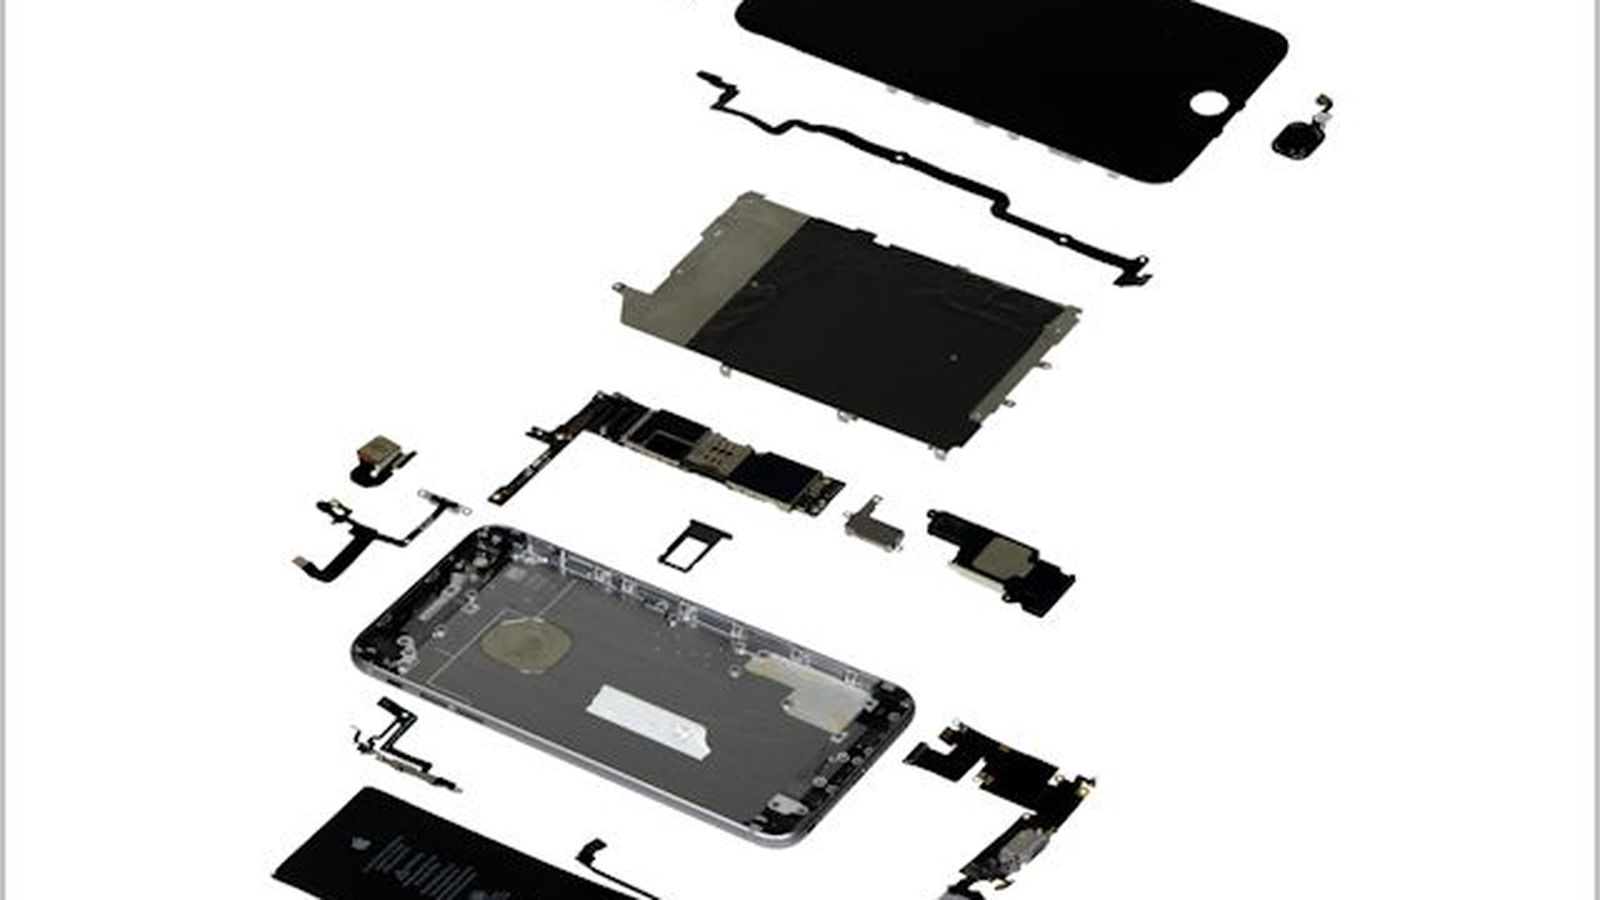 iphone 4 disassembly diagram ion thruster teardown shows apple 39s 6 cost at least 200 to